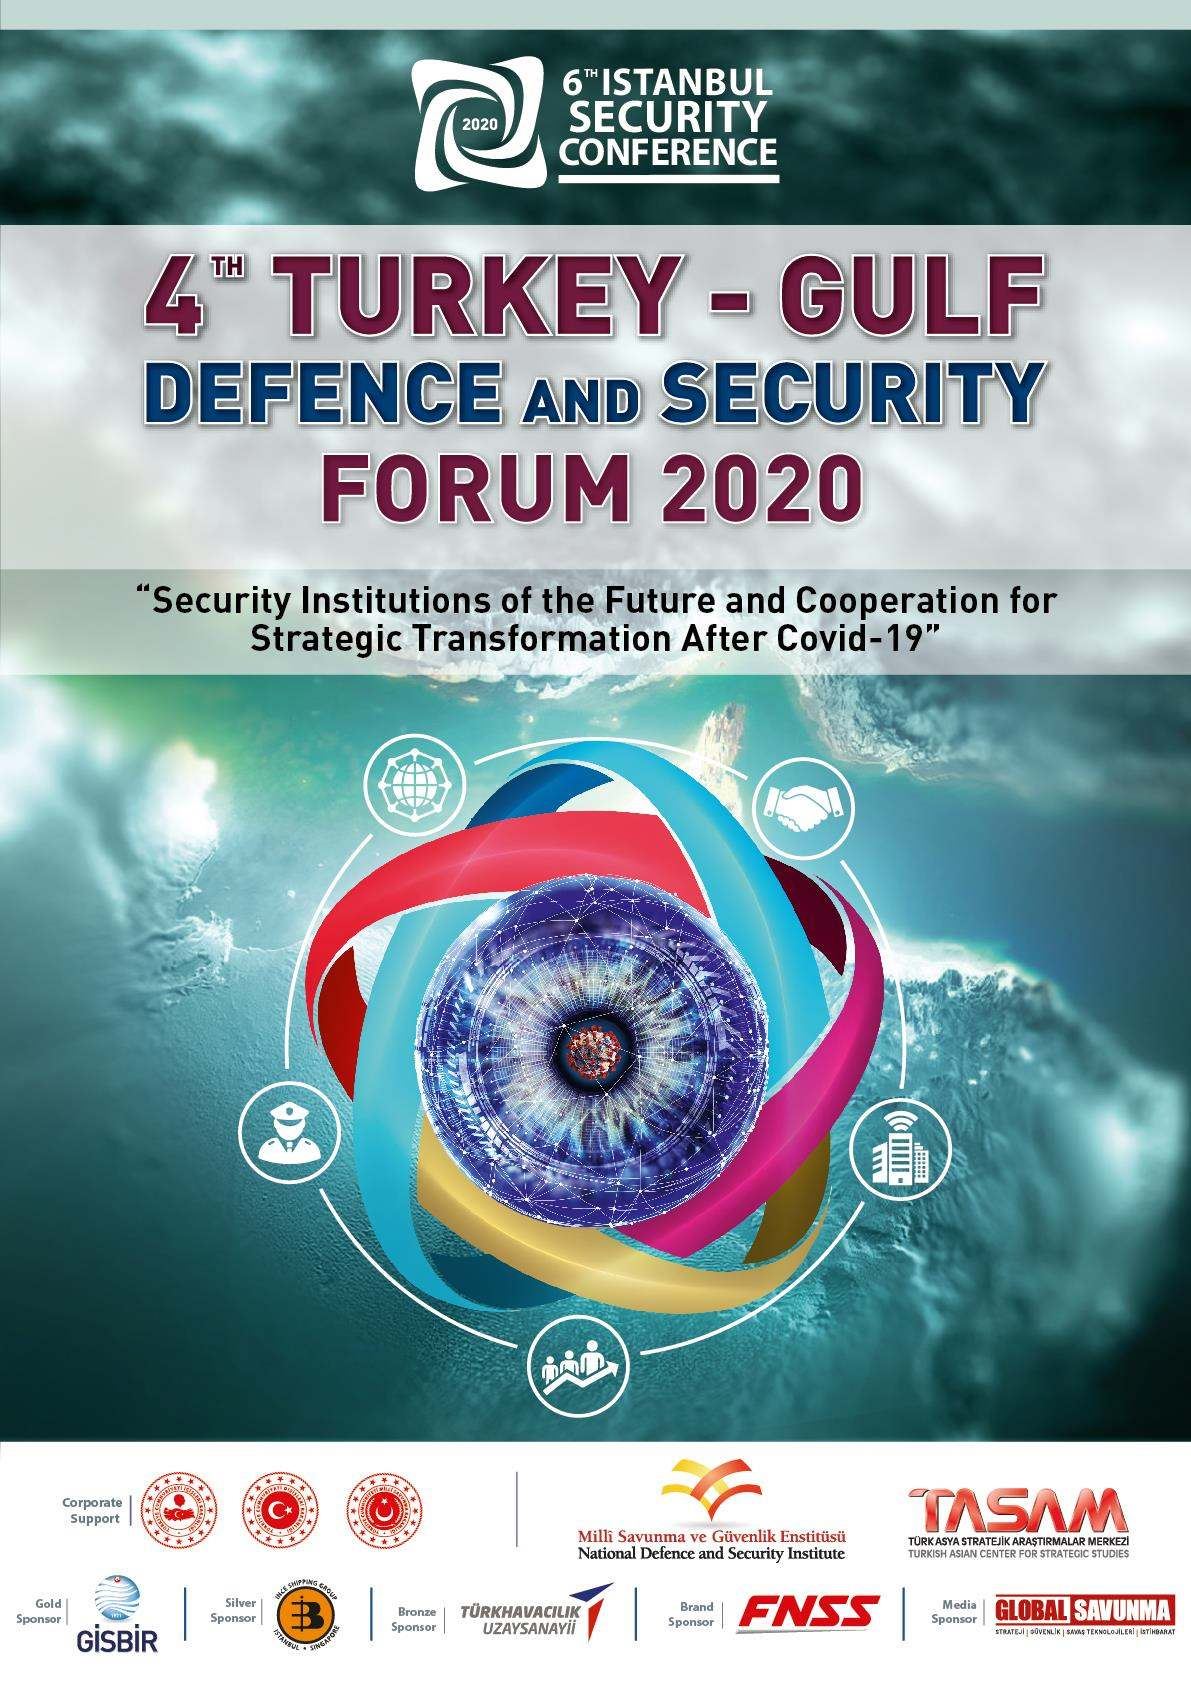 4TH Turkey - Gulf Defence and Security Forum